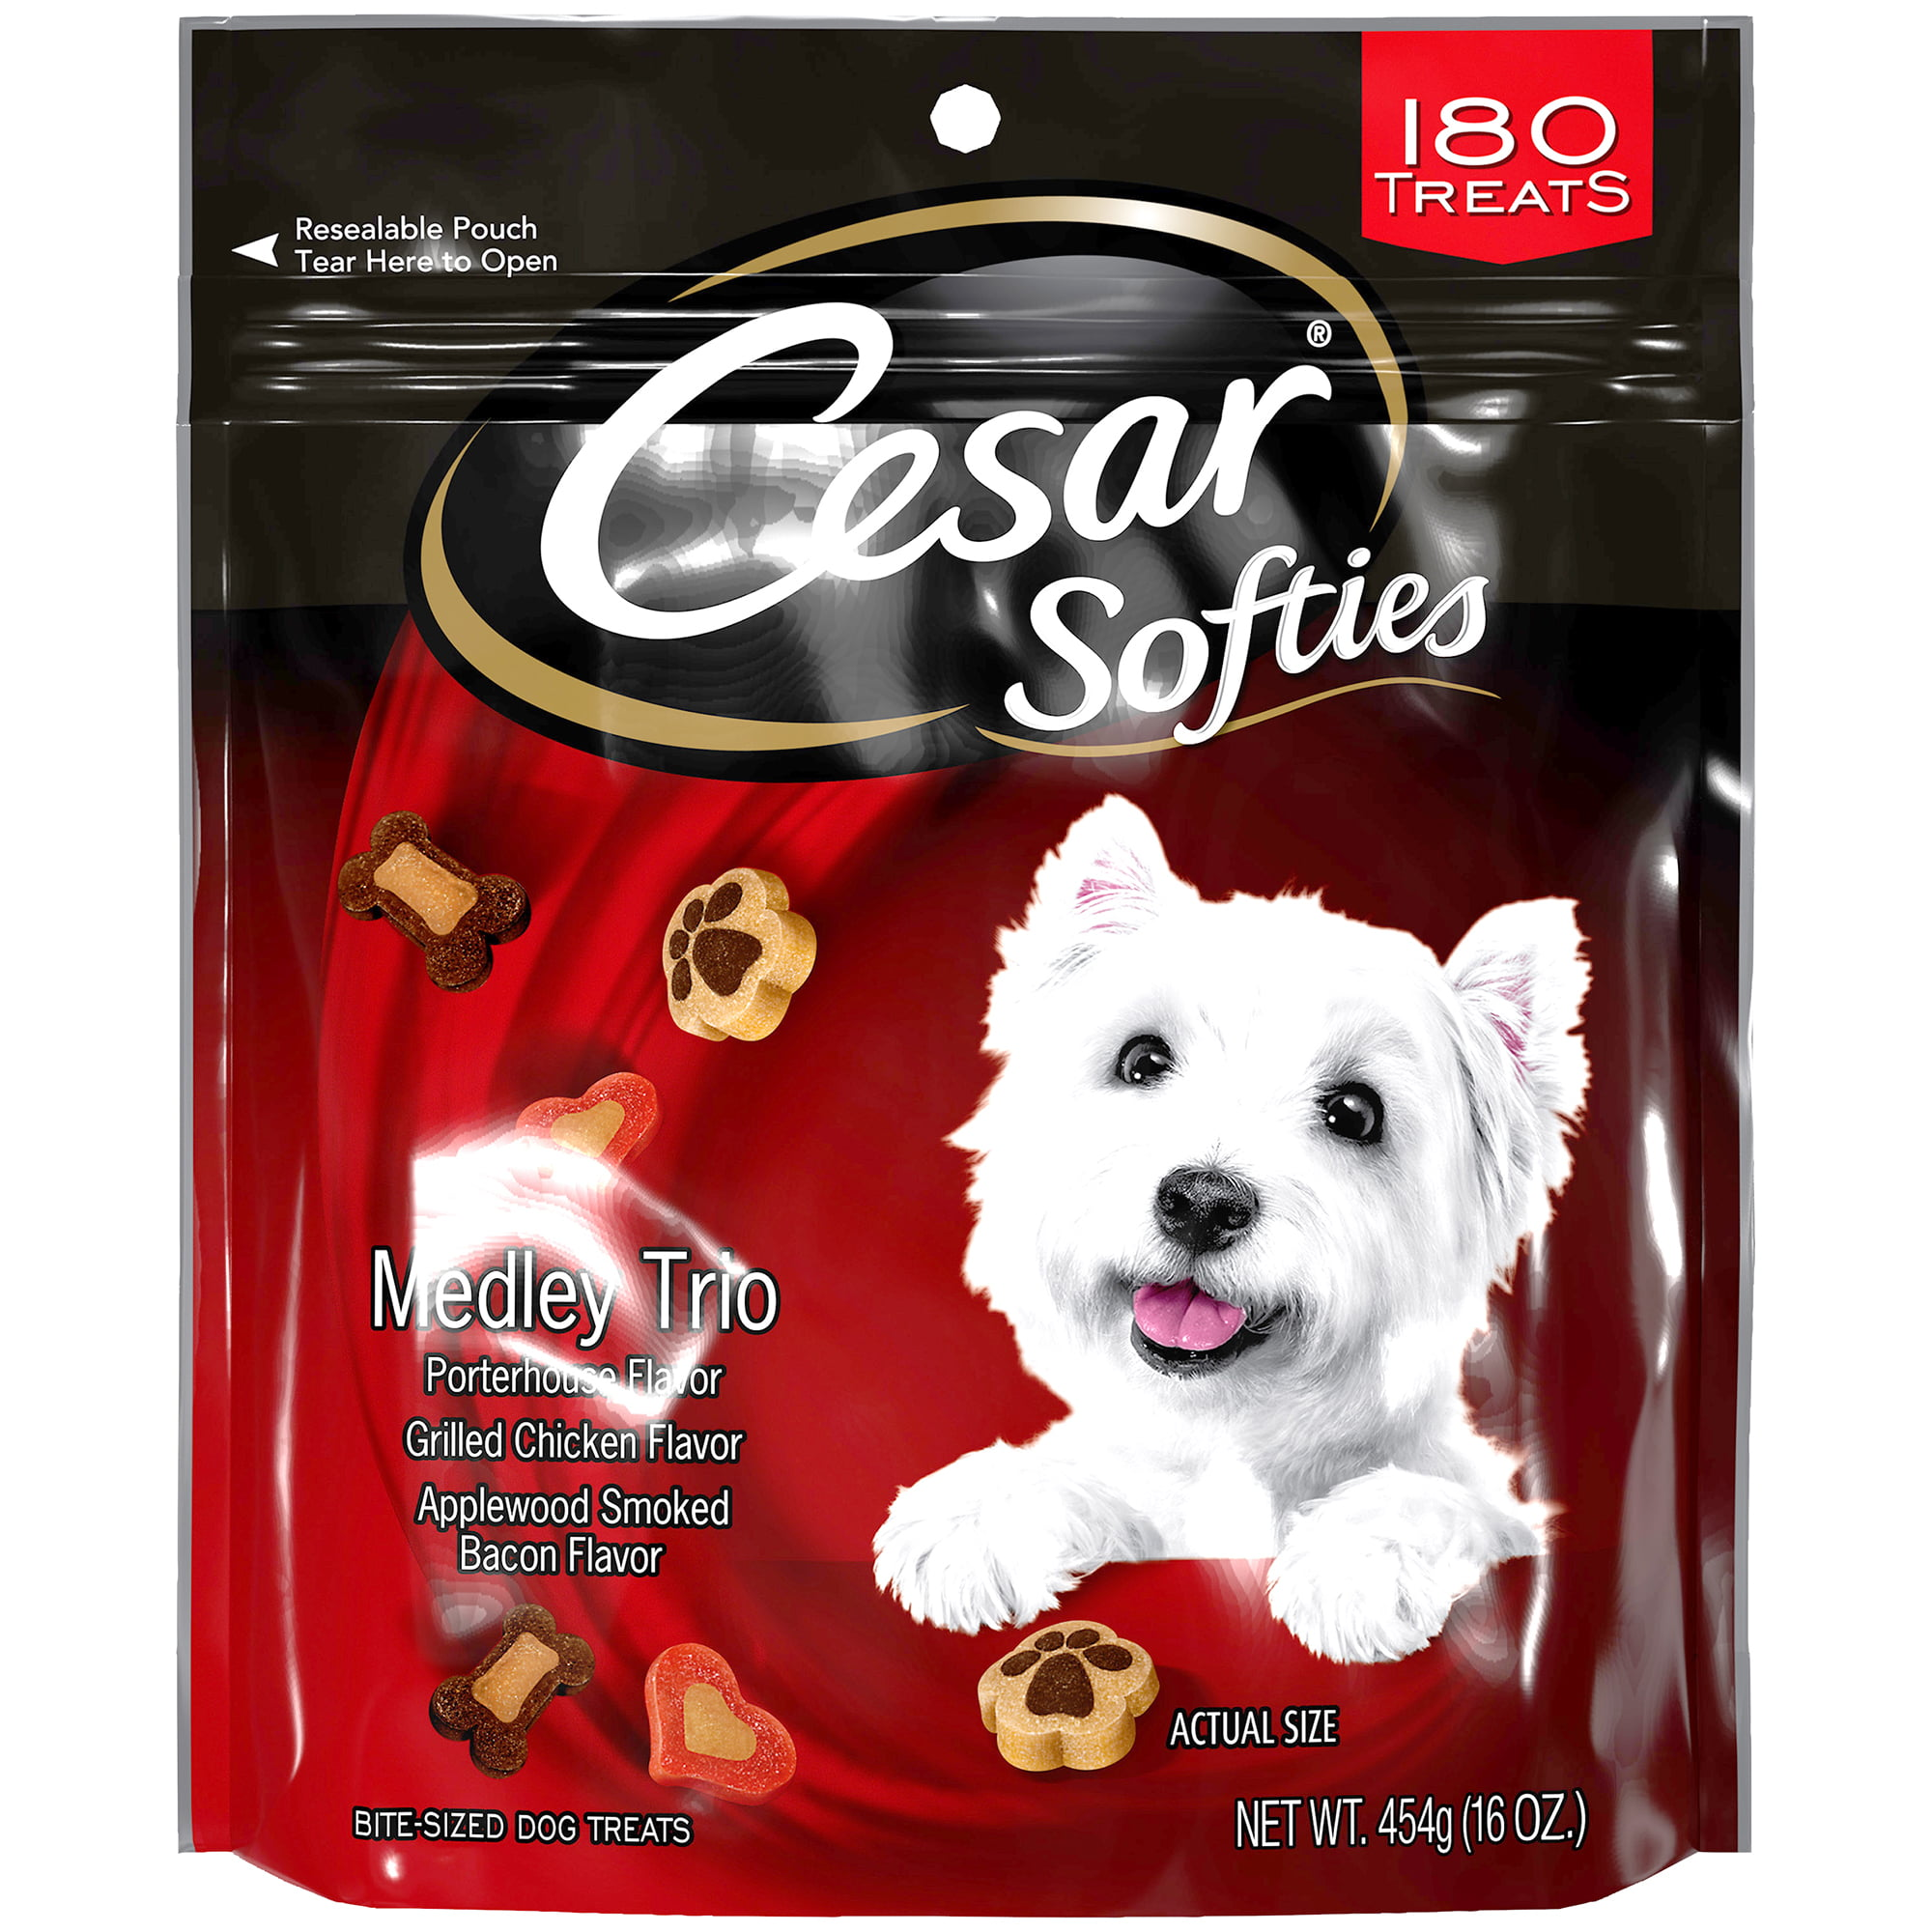 CESAR SOFTIES Medley Trio Dog Treats 16 oz. by Mars Petcare